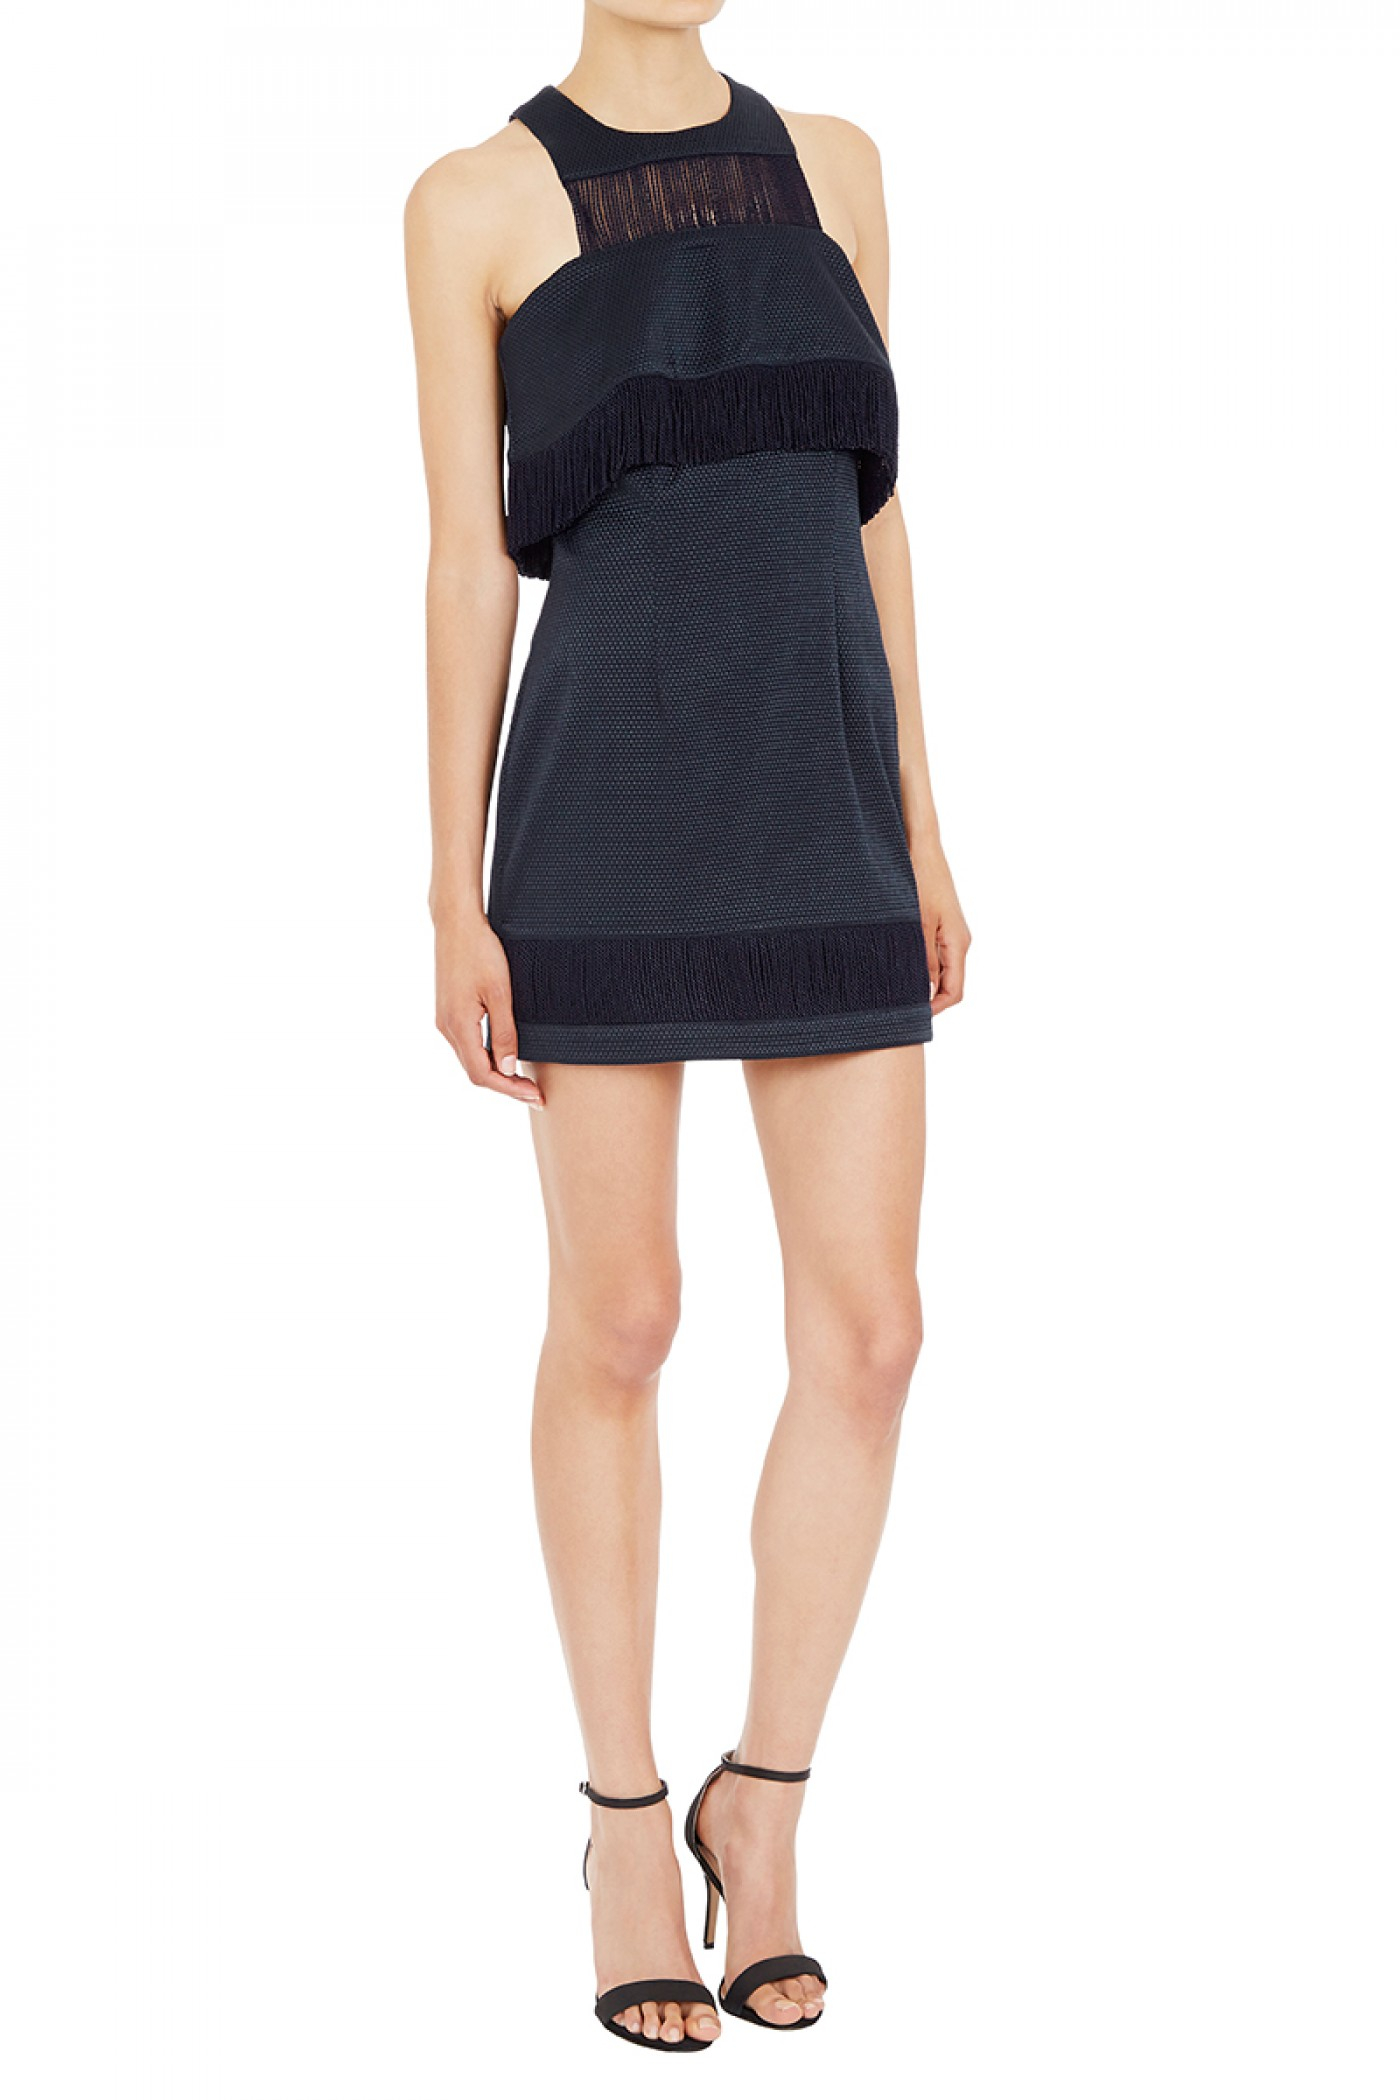 Sass and bide dress white navy